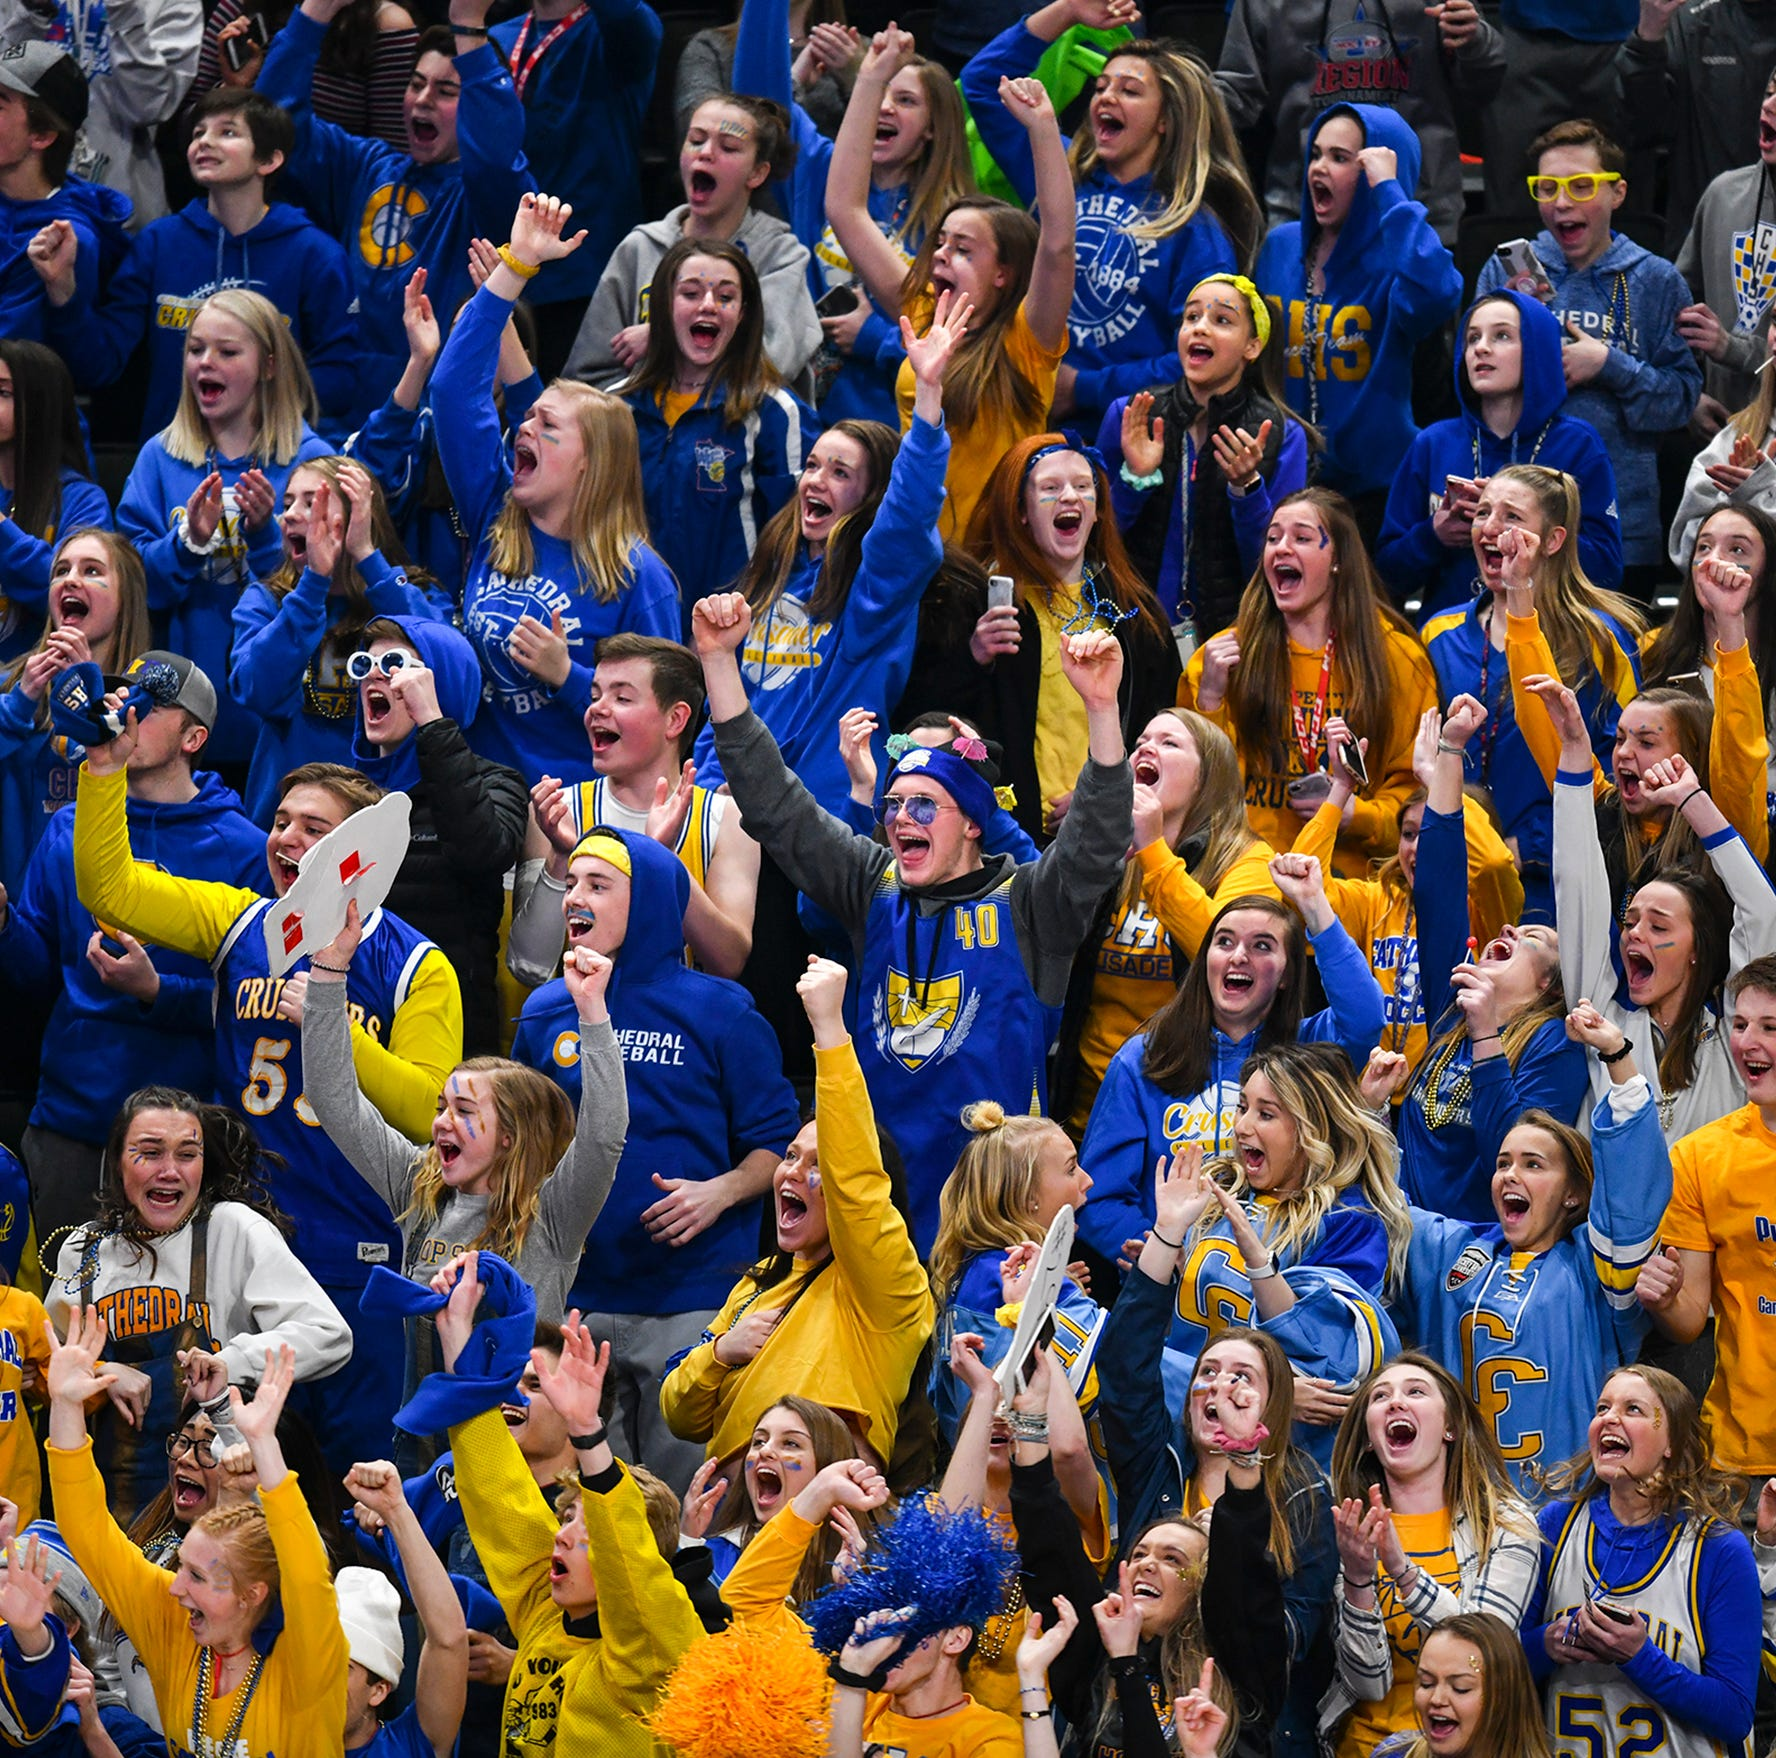 Cathedral fans revel in hockey team's 1st state title, wrapping up its 'unfinished business'